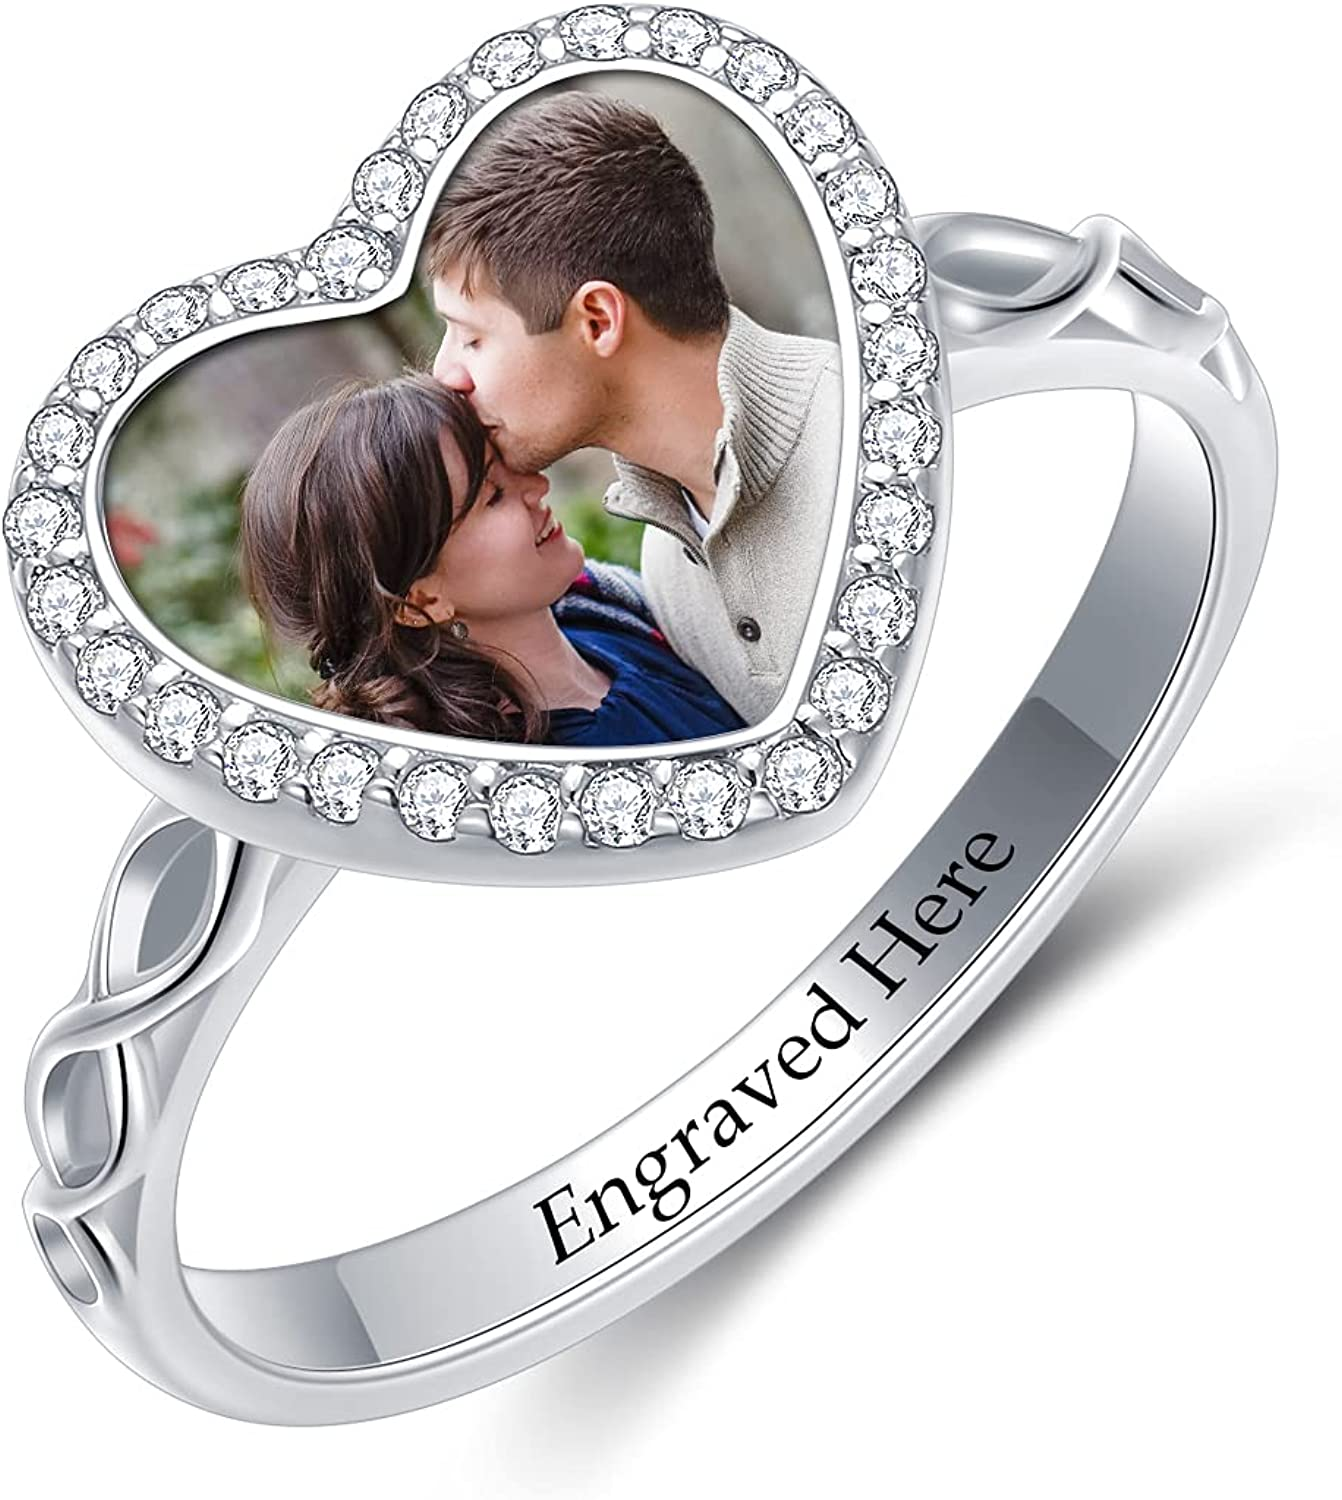 Spring new work one after another SLIACETE Complete Free Shipping Custom Photo Ring 925 Personalized Sterling Pict Silver